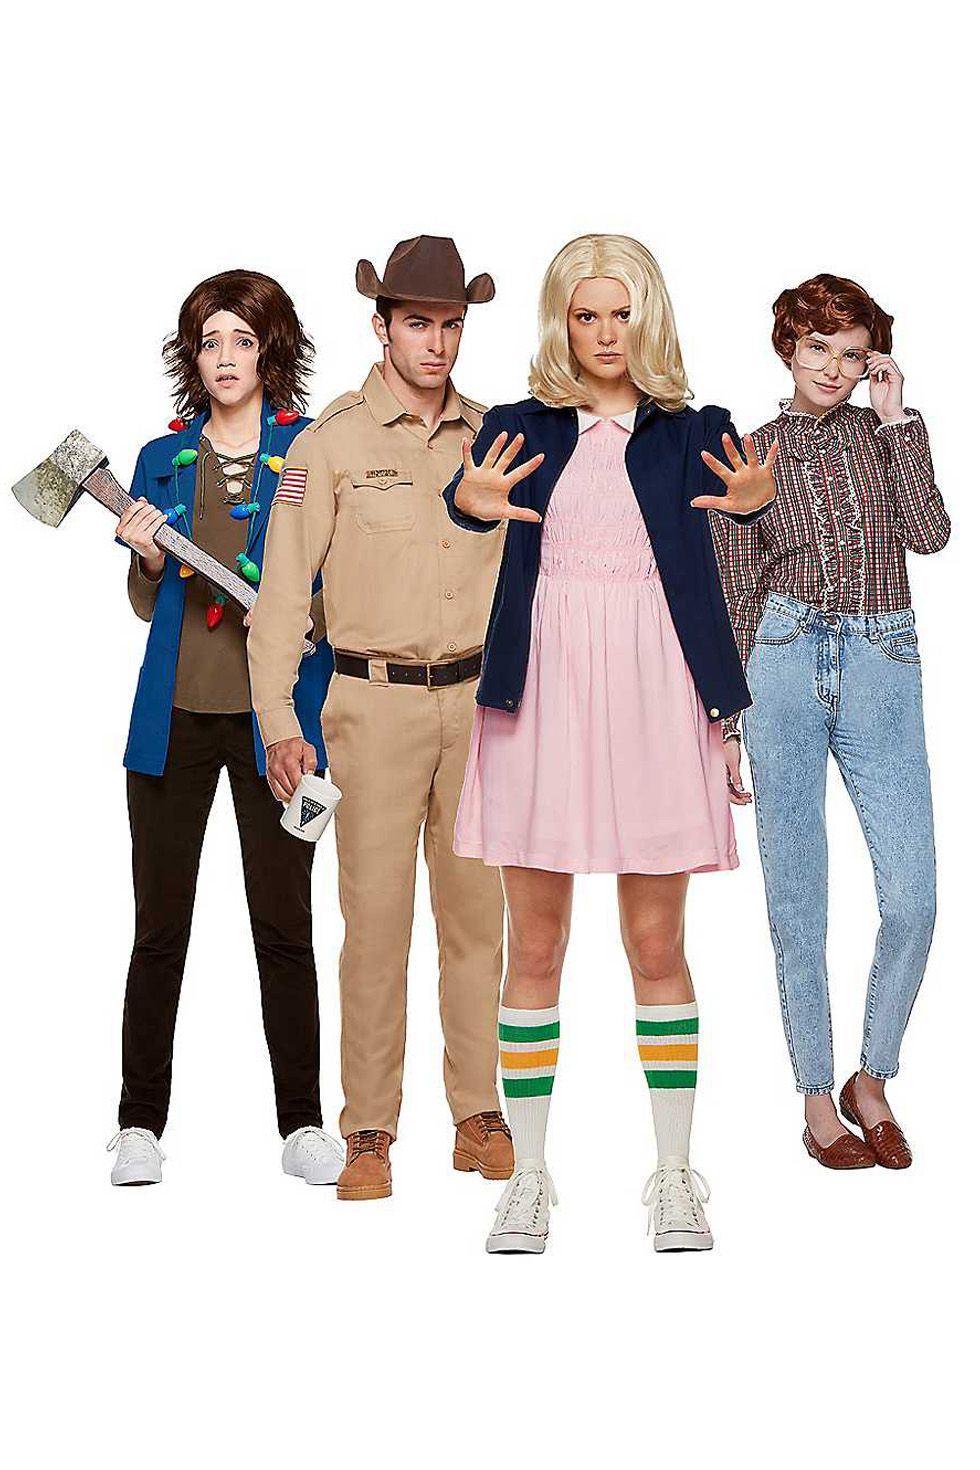 dating games for girls who are 10 11 girls halloween